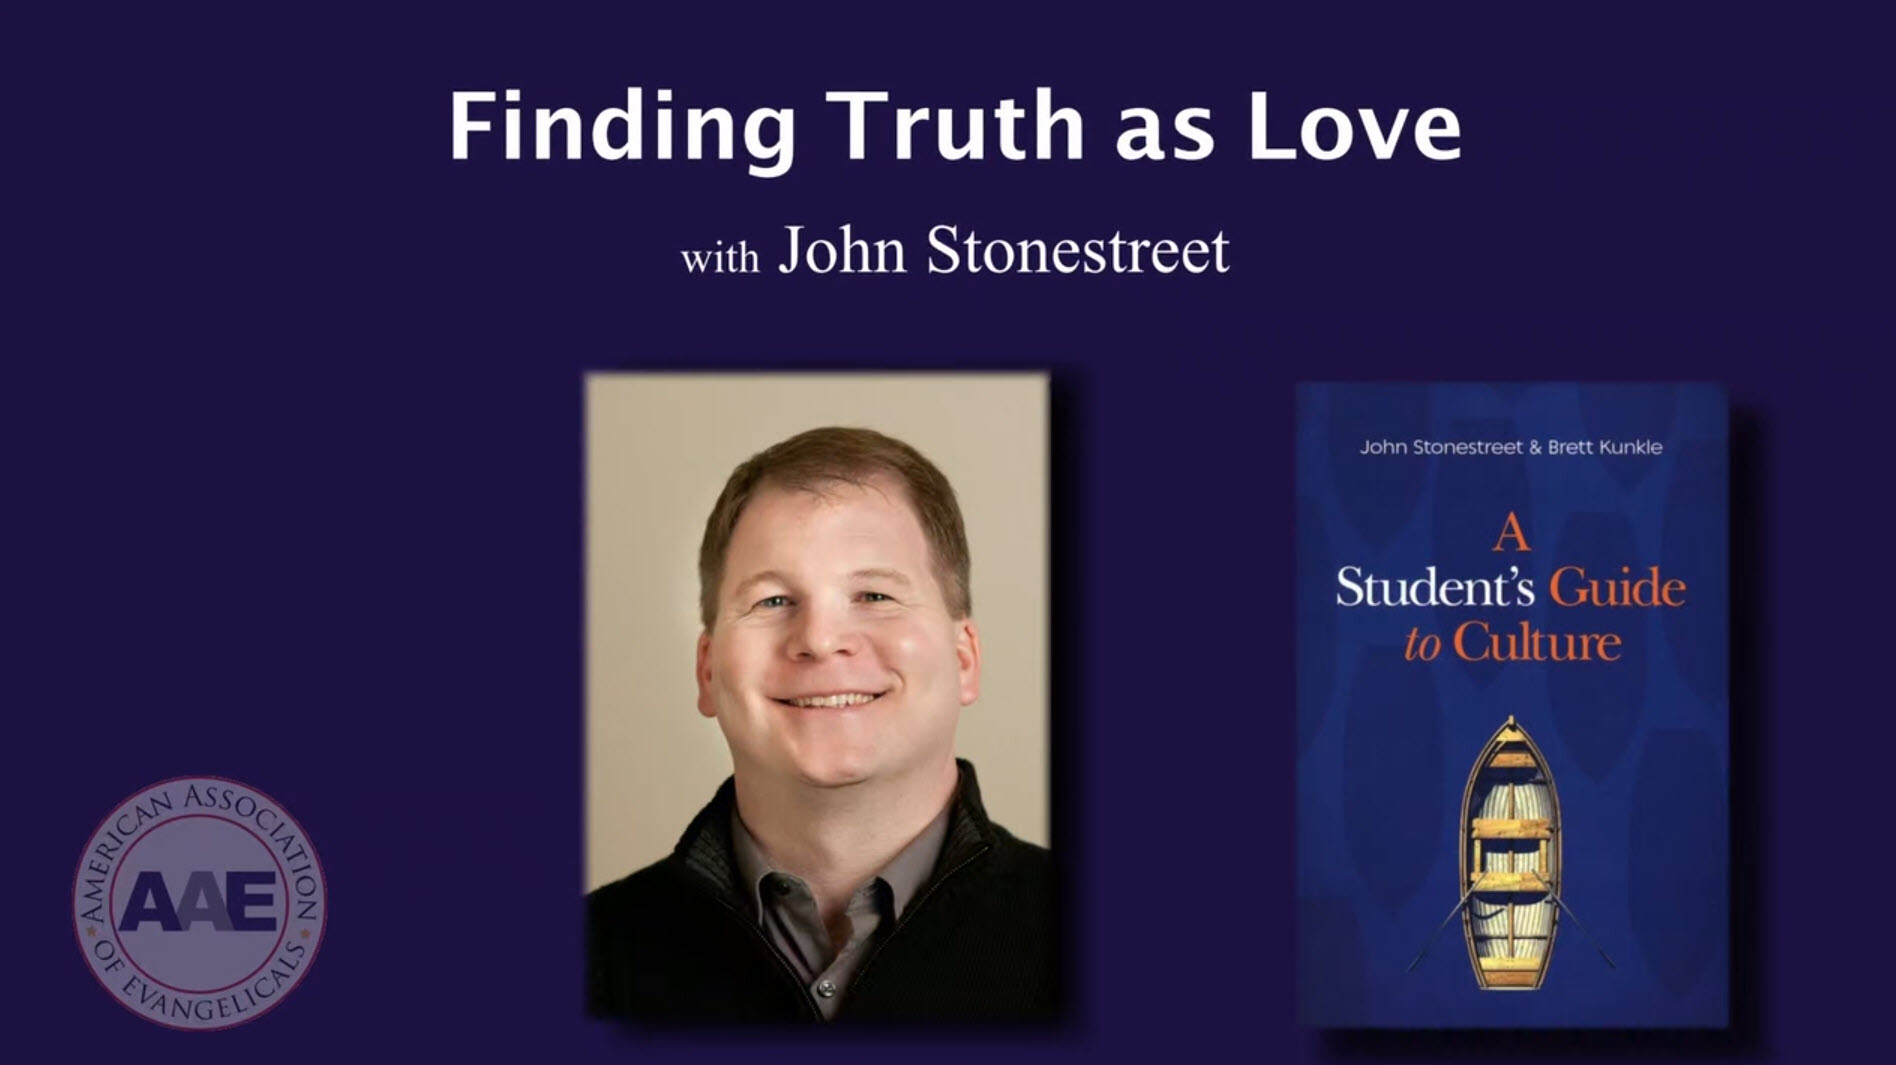 Finding Truth as Love